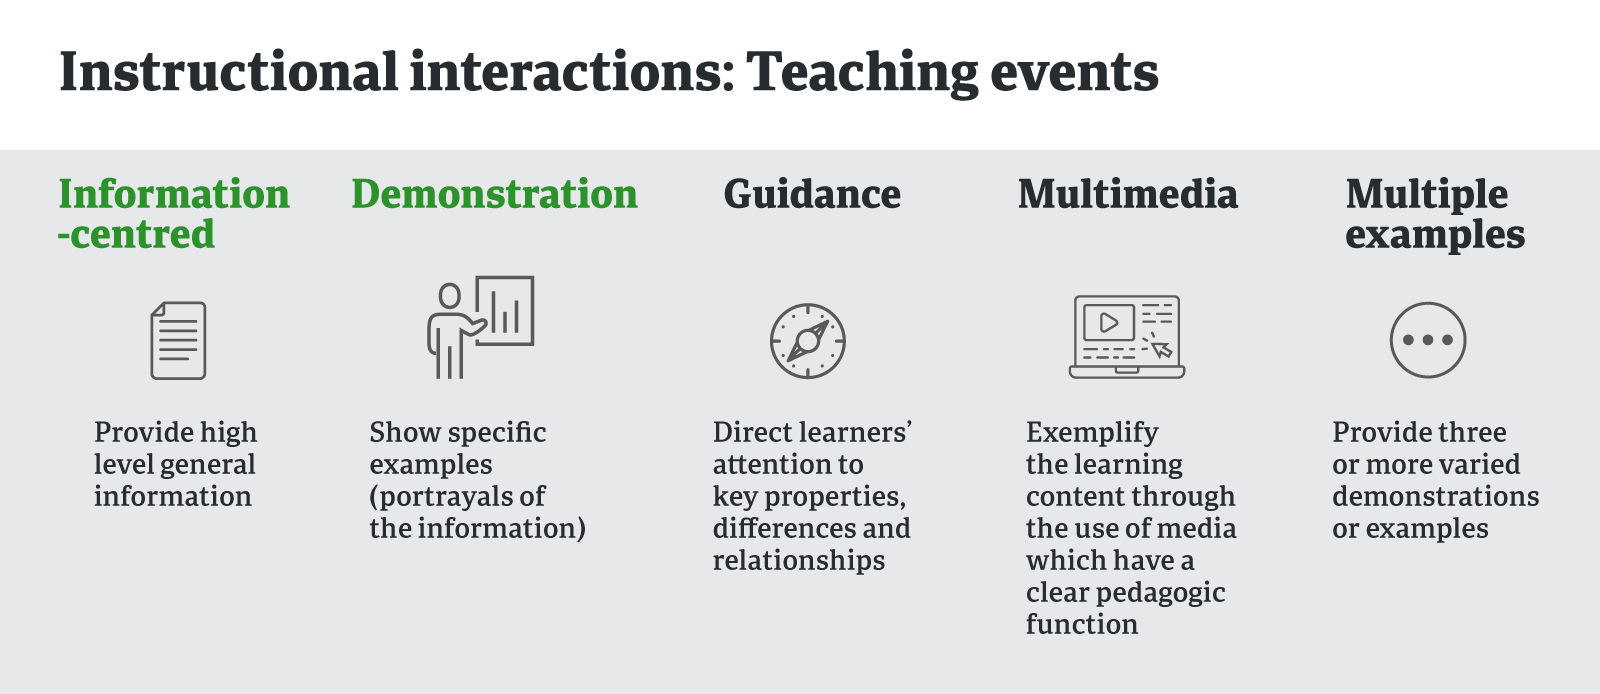 Instructional interactions: teaching events